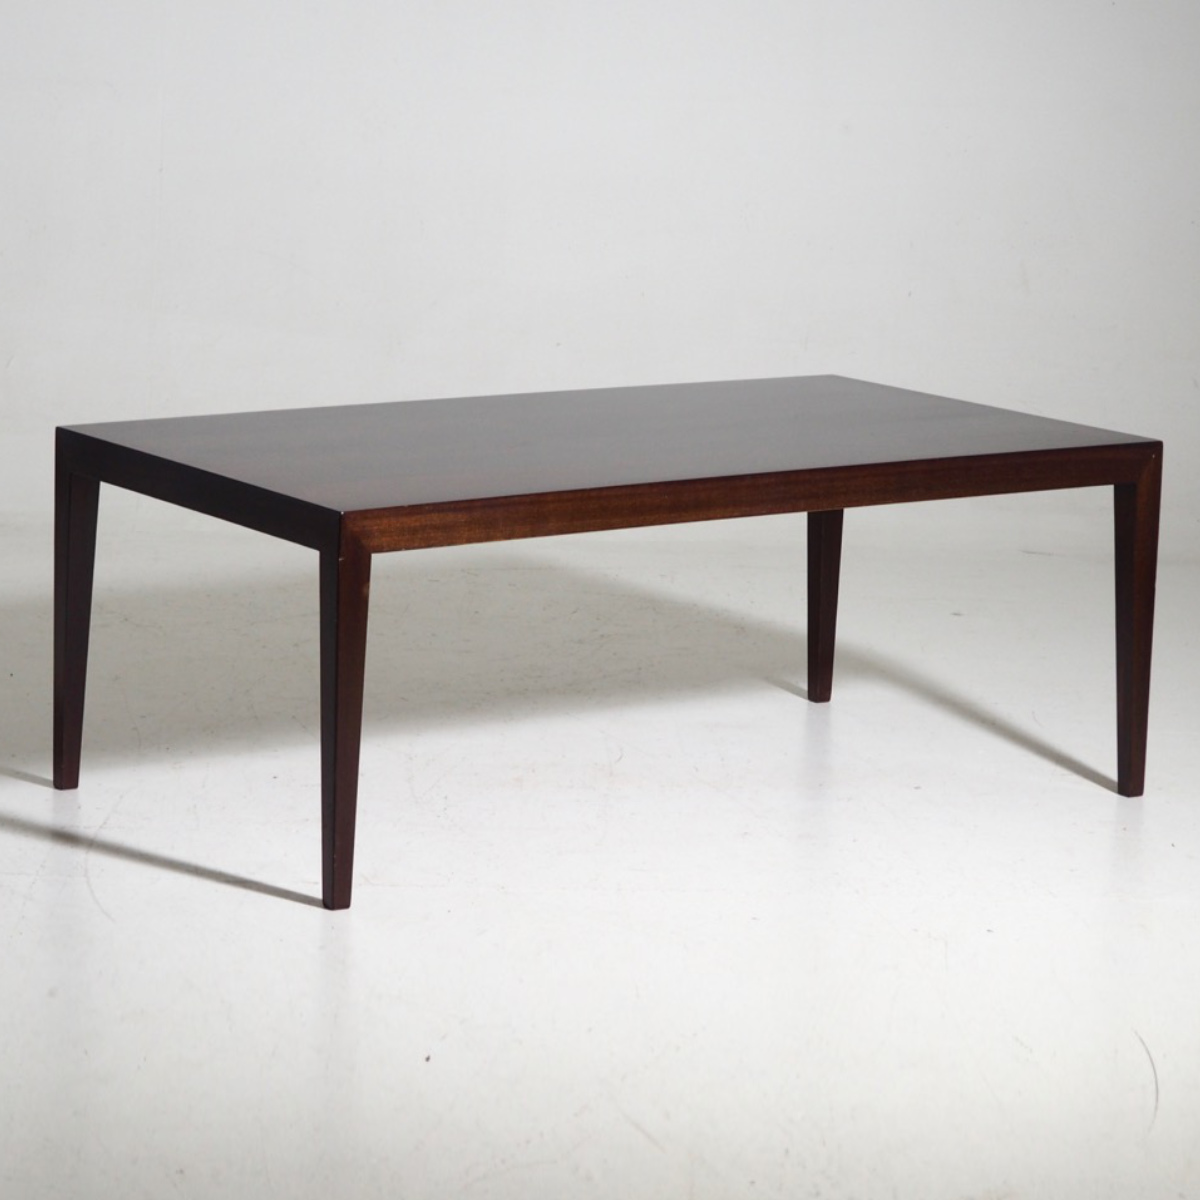 Coffe table in rosewood, 60's. - € 450